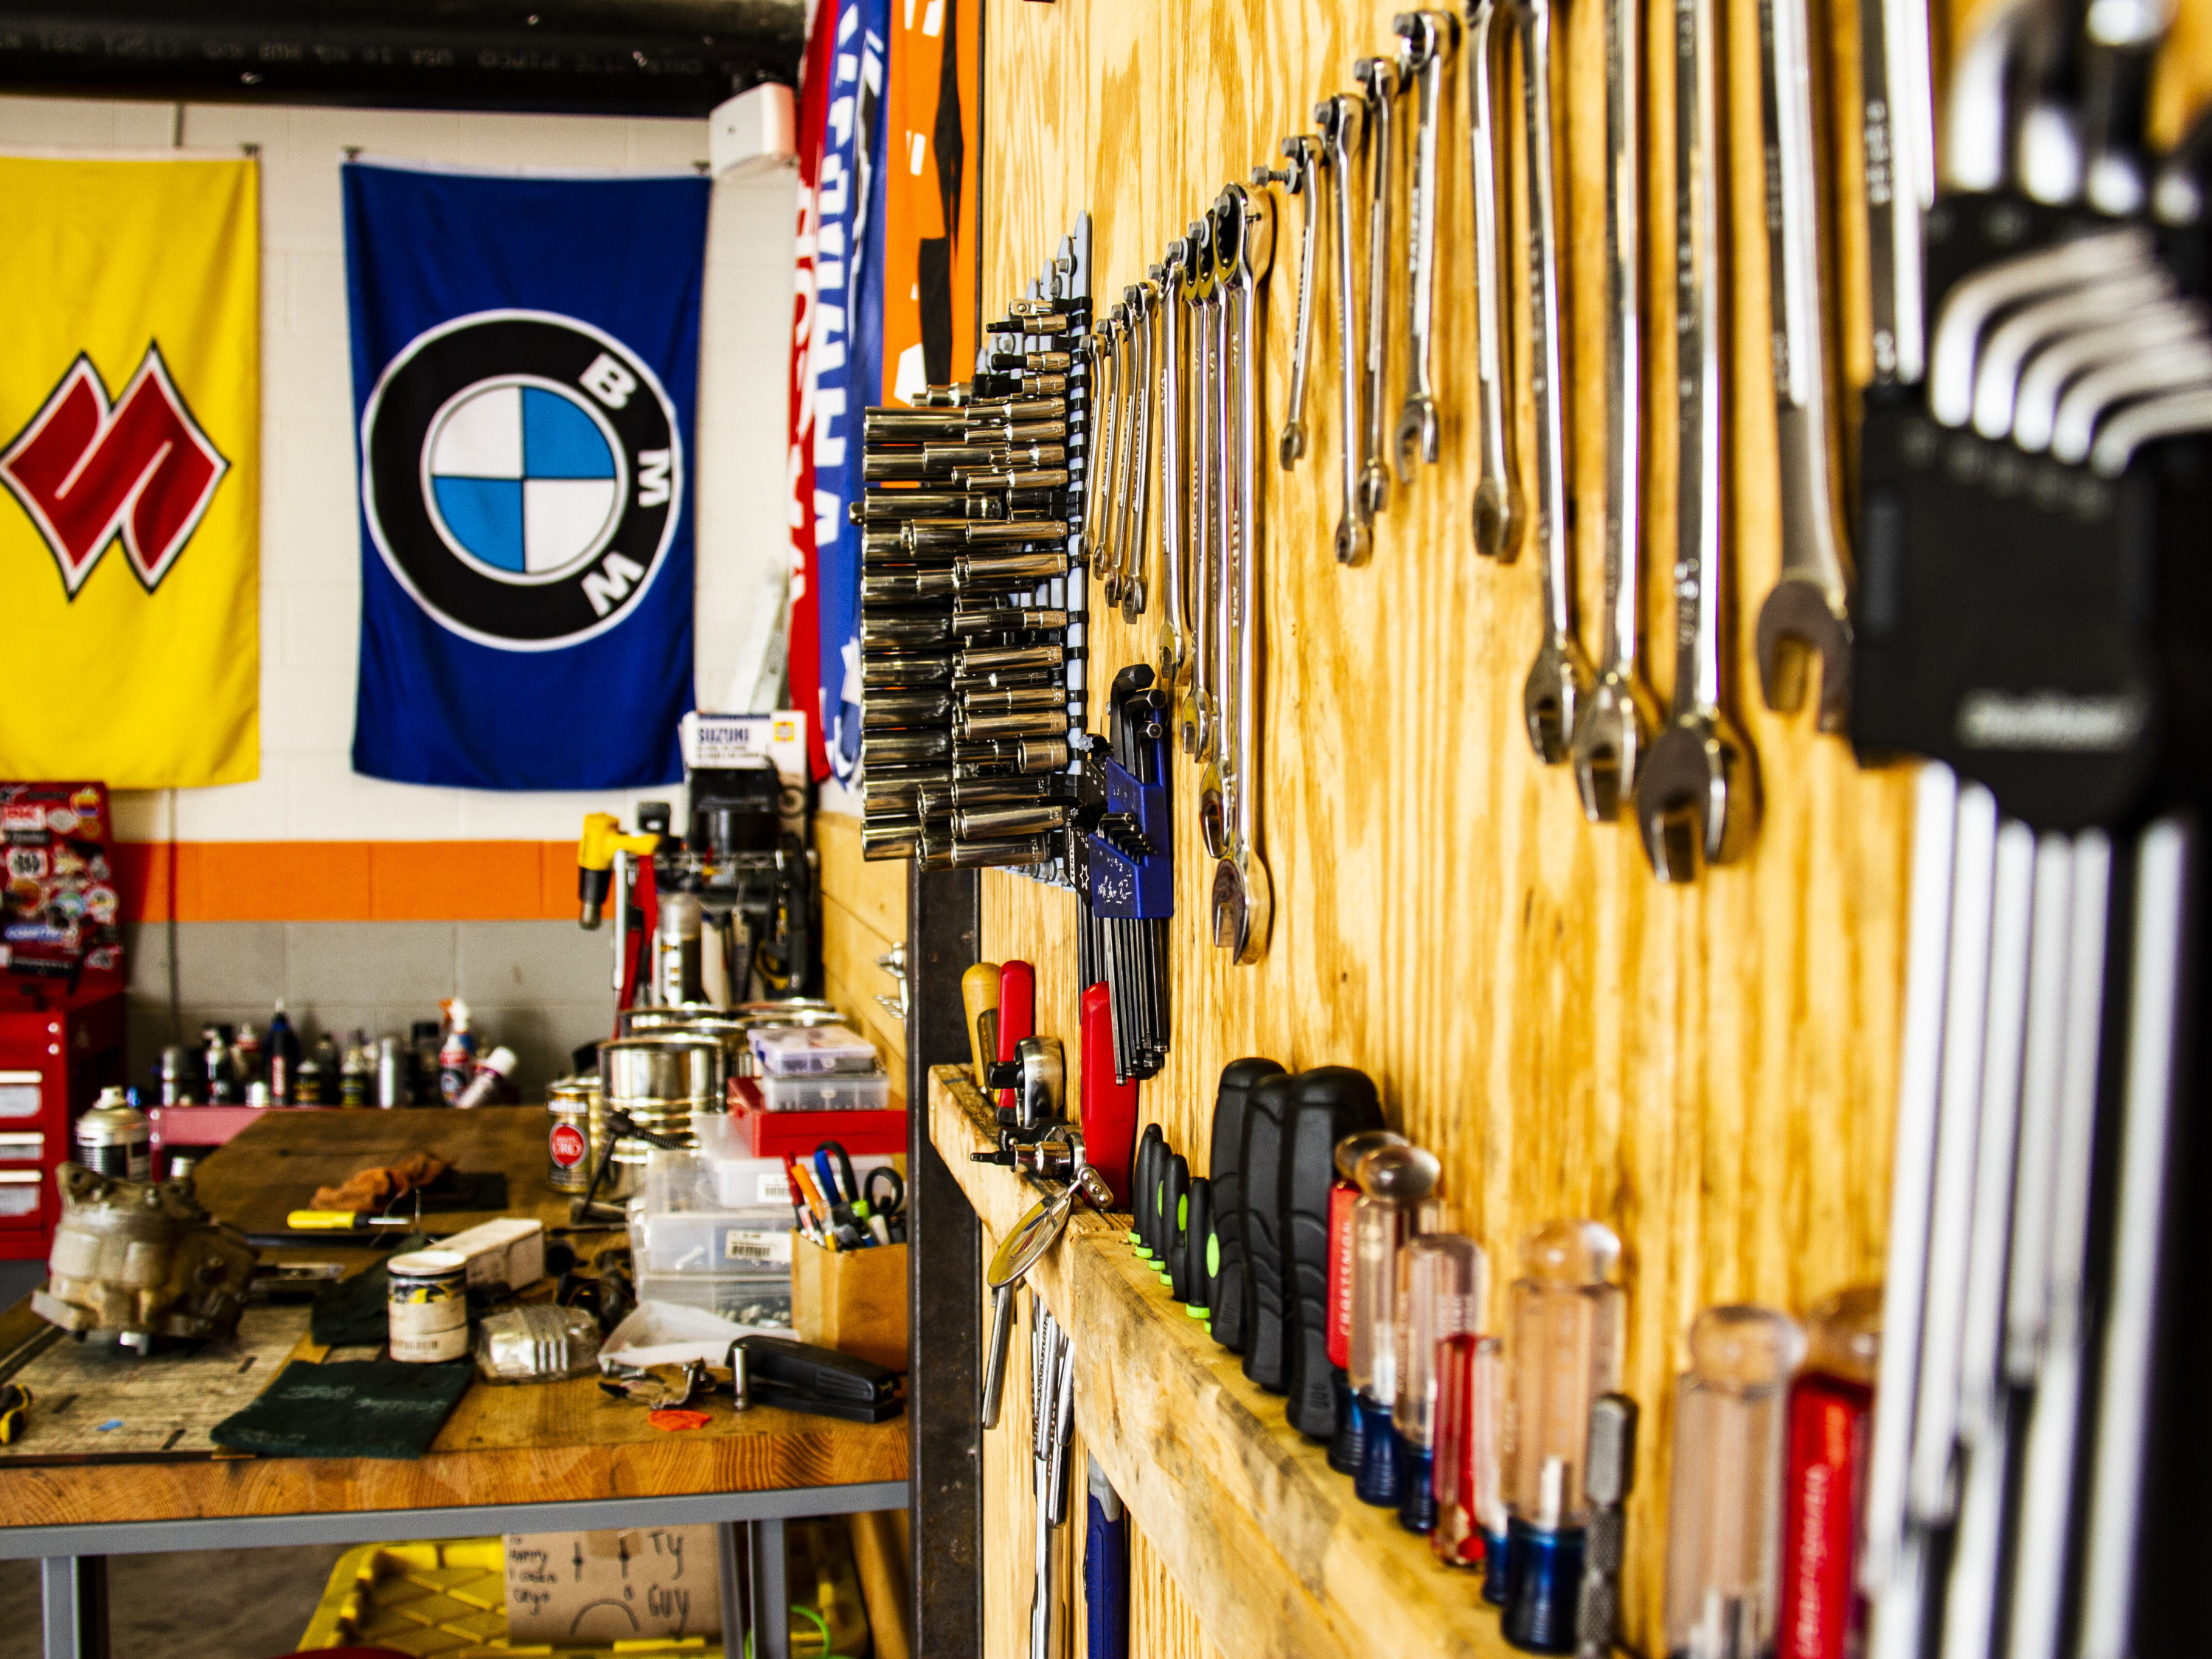 This Do-It-Yourself Shop Wants To Teach You The Art Of Motorcycle